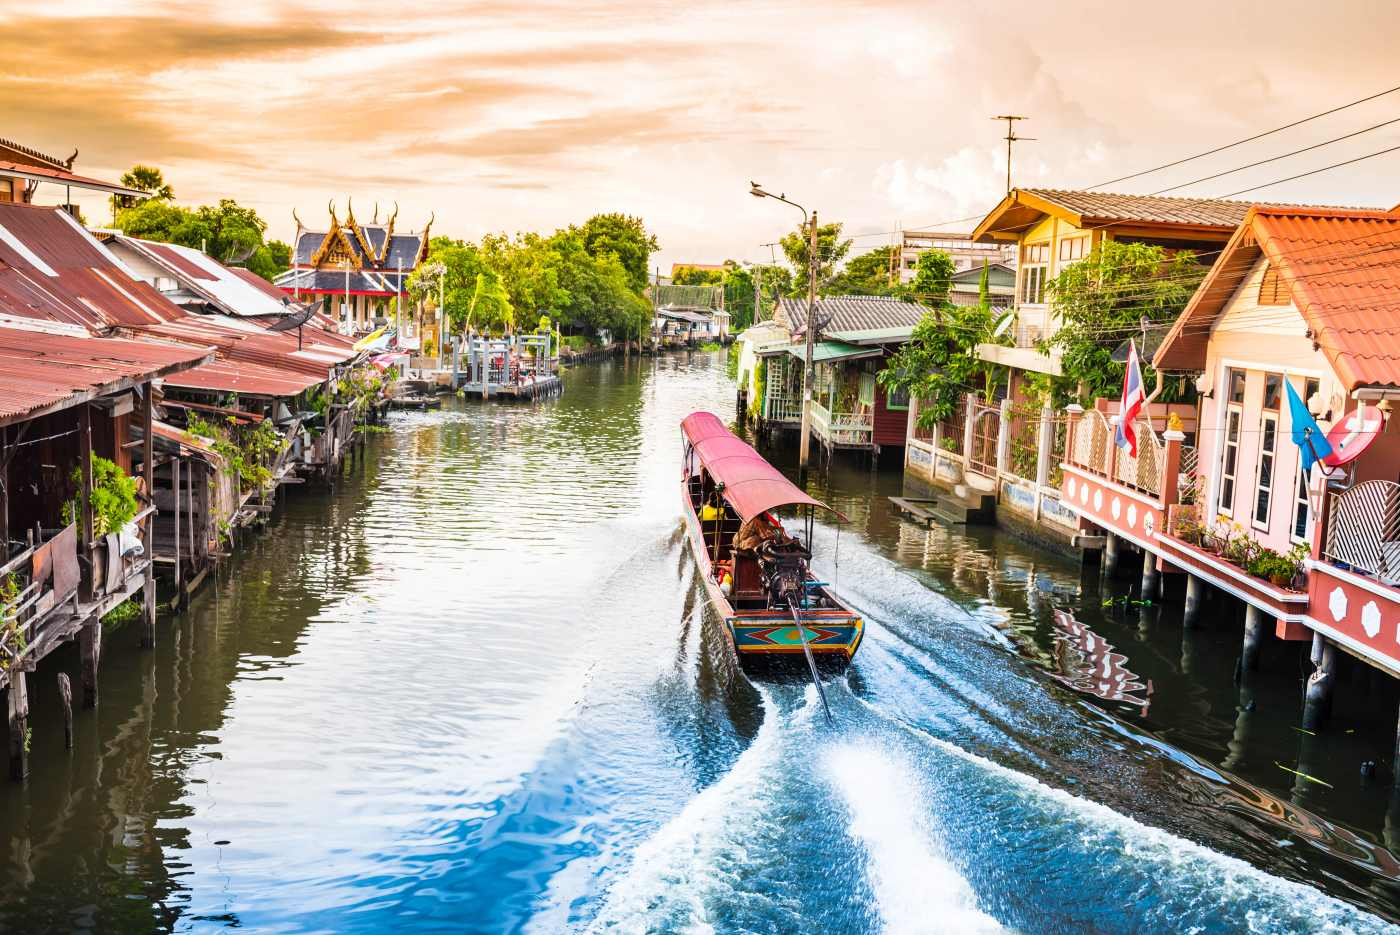 1400 boat for travel in canallBangkok Thailand shutterstock 488243273